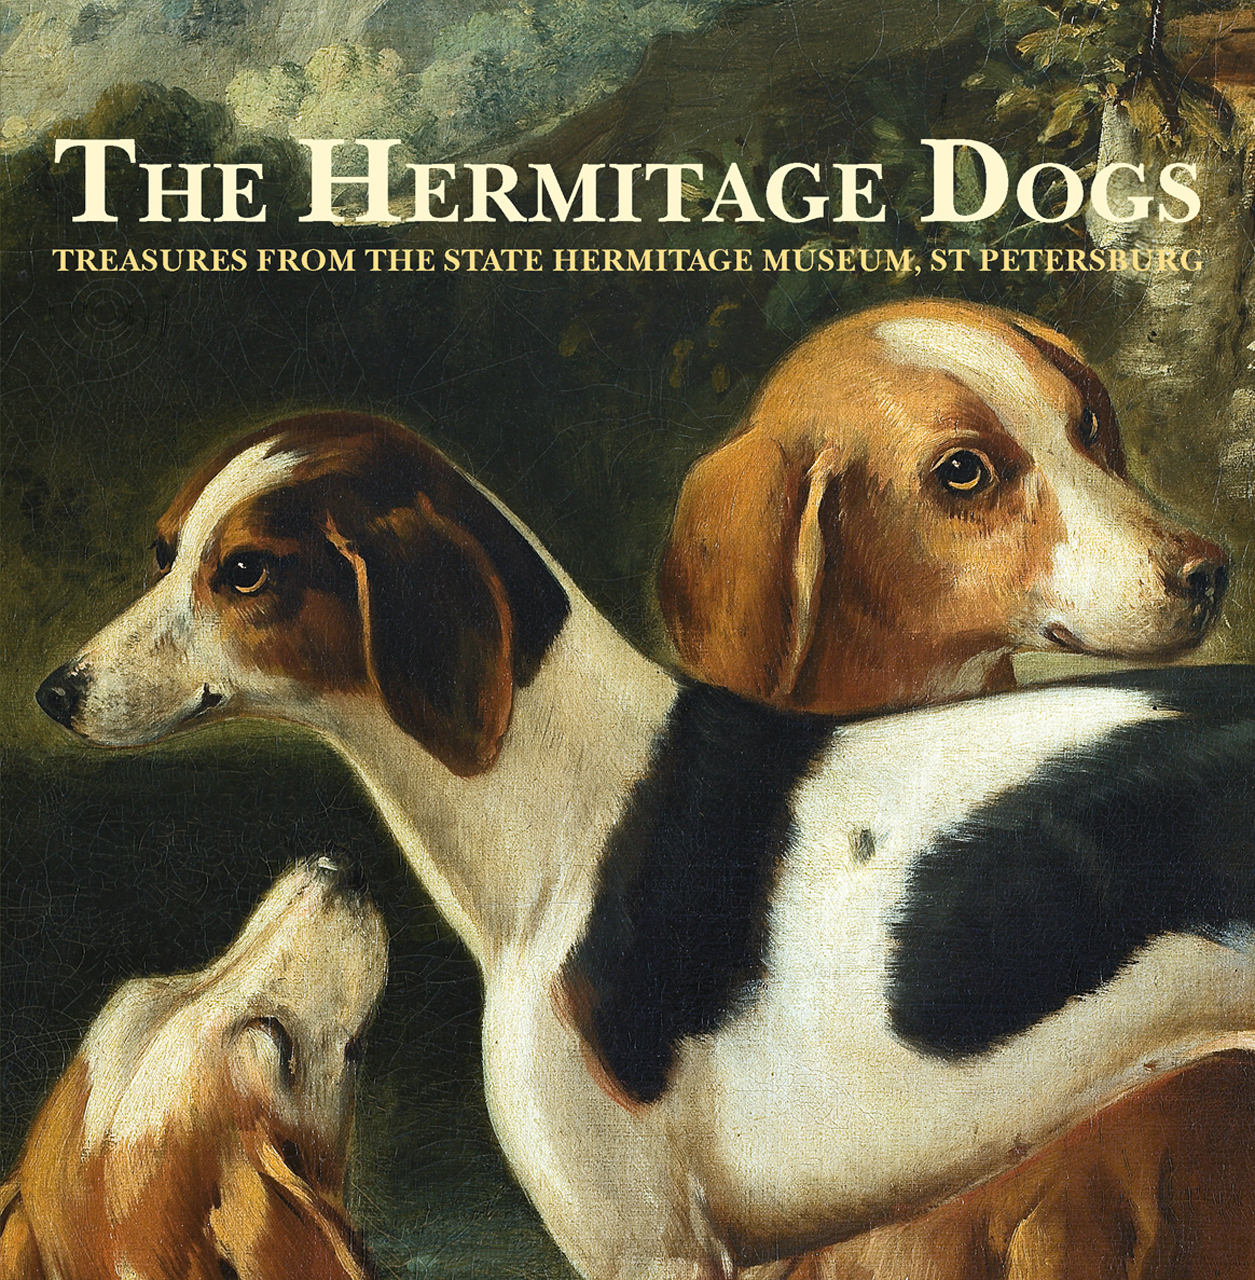 The Hermitage Dogs